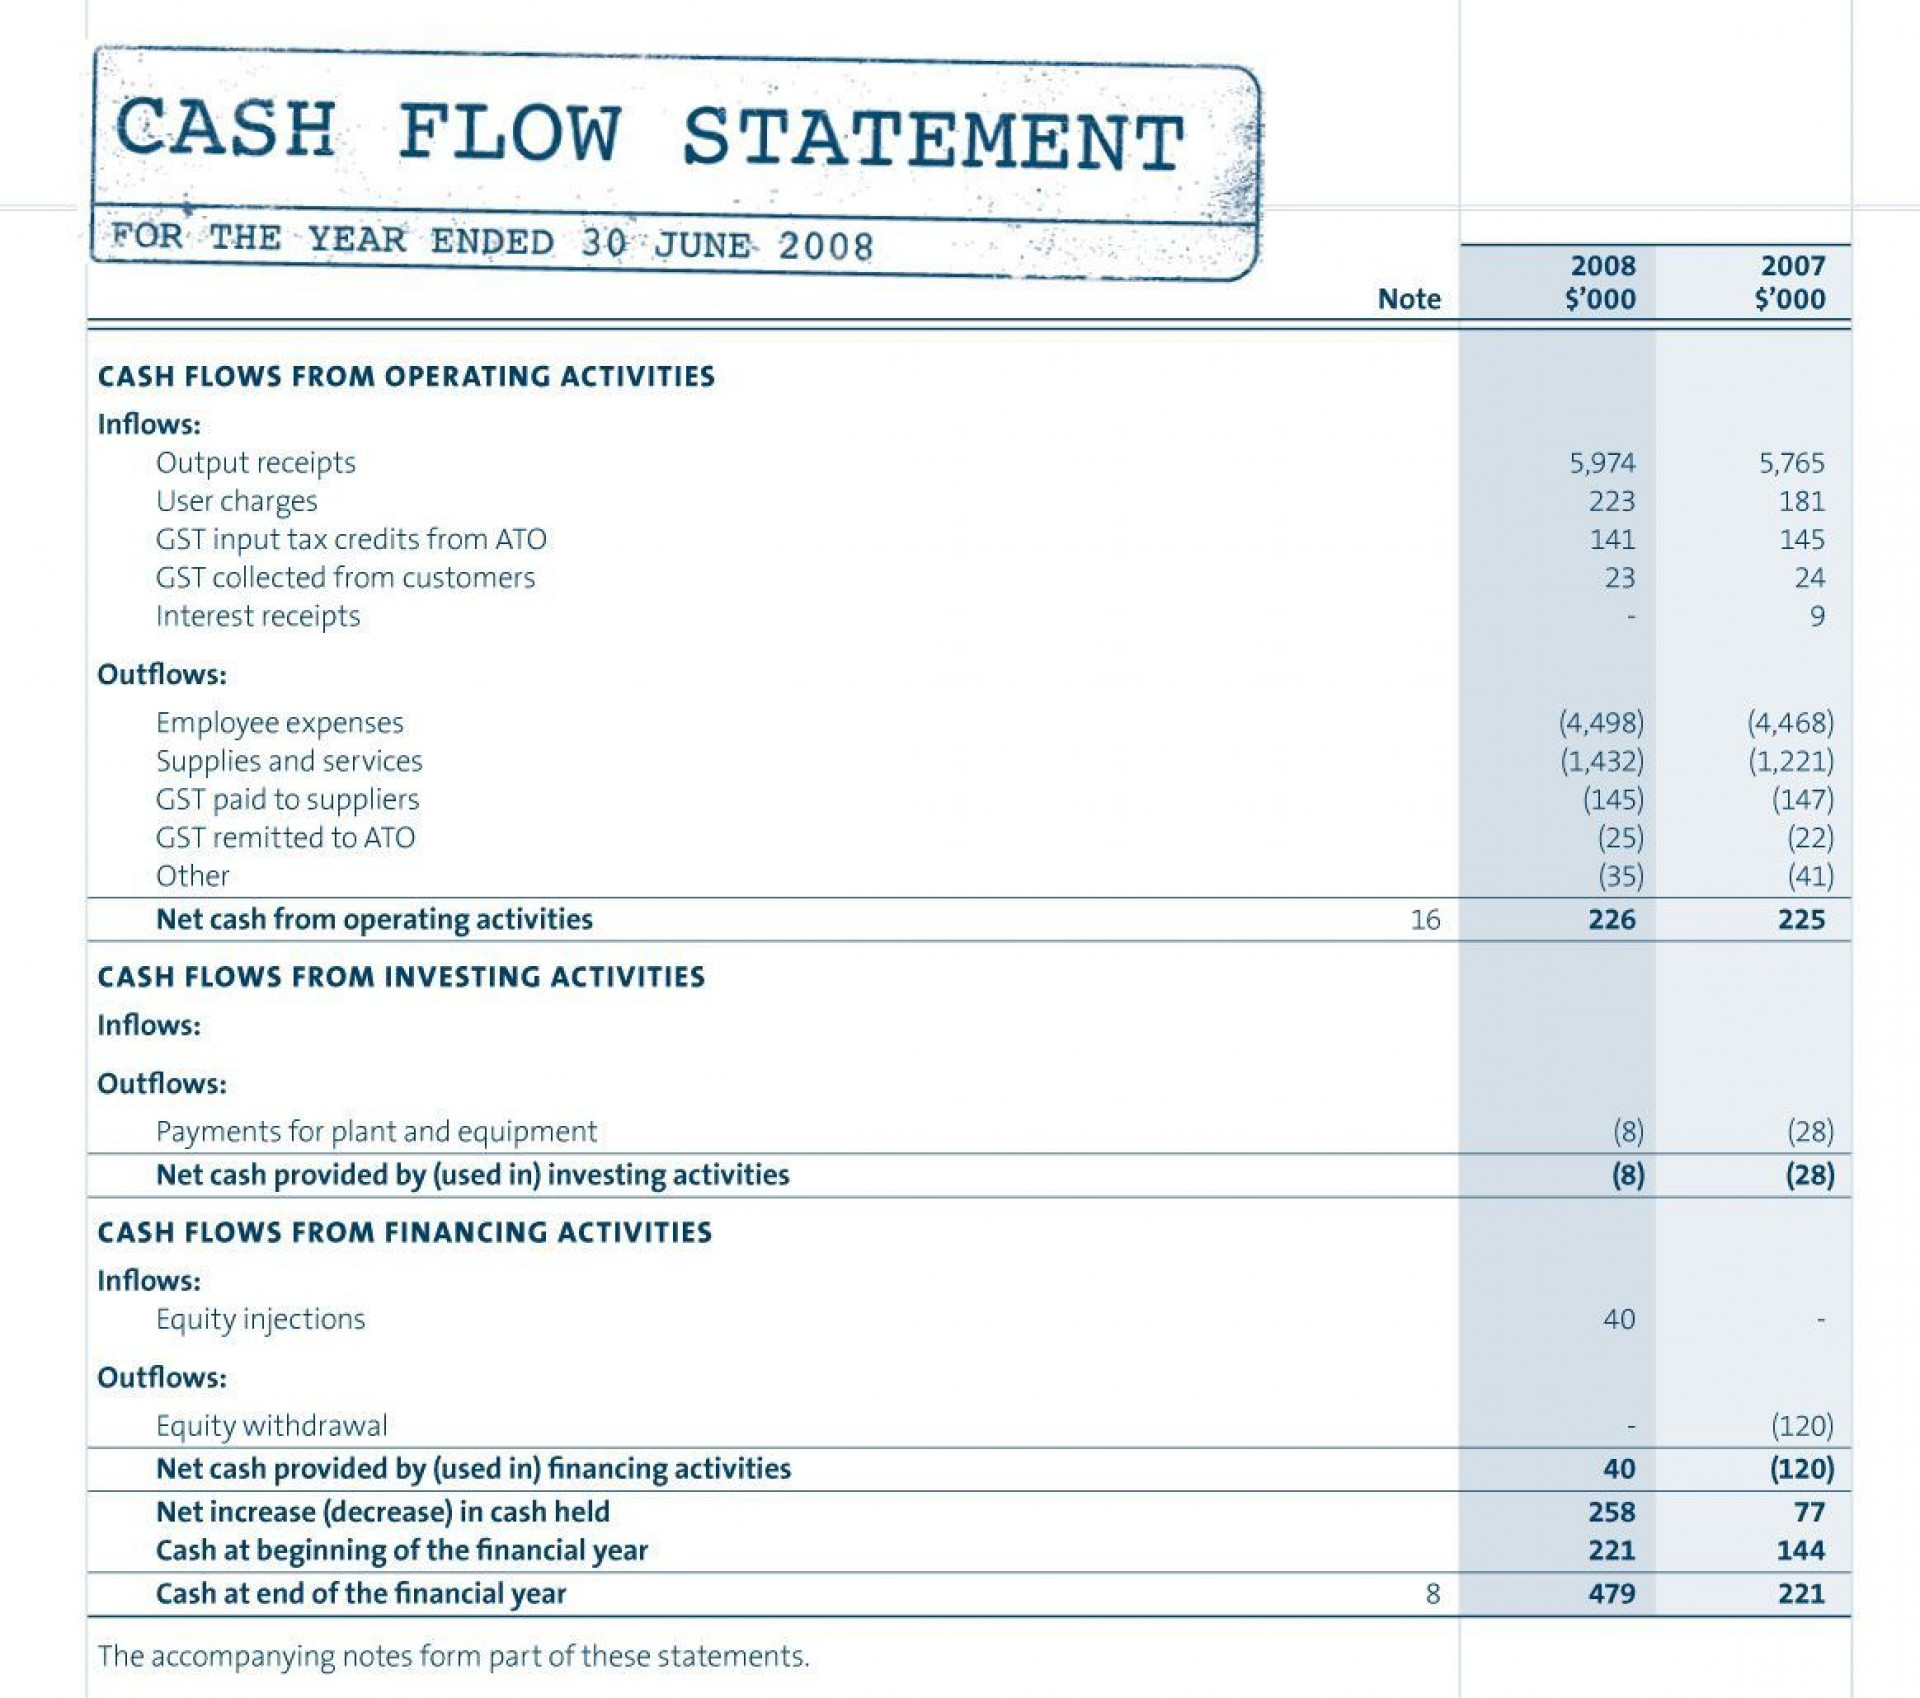 002 Outstanding Statement Of Cash Flow Template Ifr Idea  Ifrs Excel1920